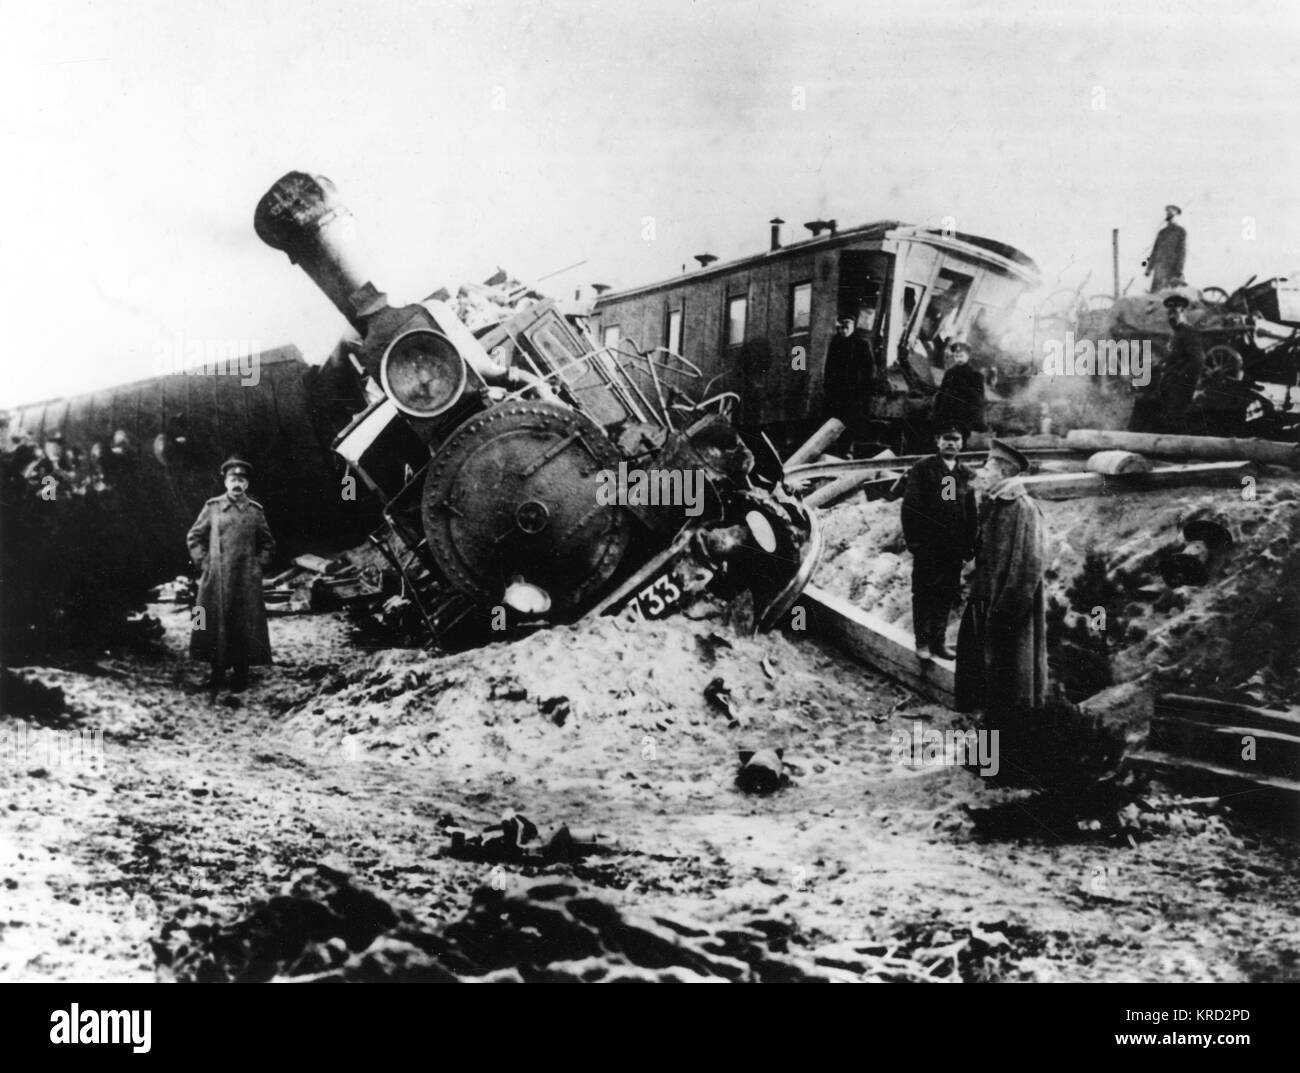 The wreckage of Russian train following a high speed accident in 1914.      Date: 1914 - Stock Image